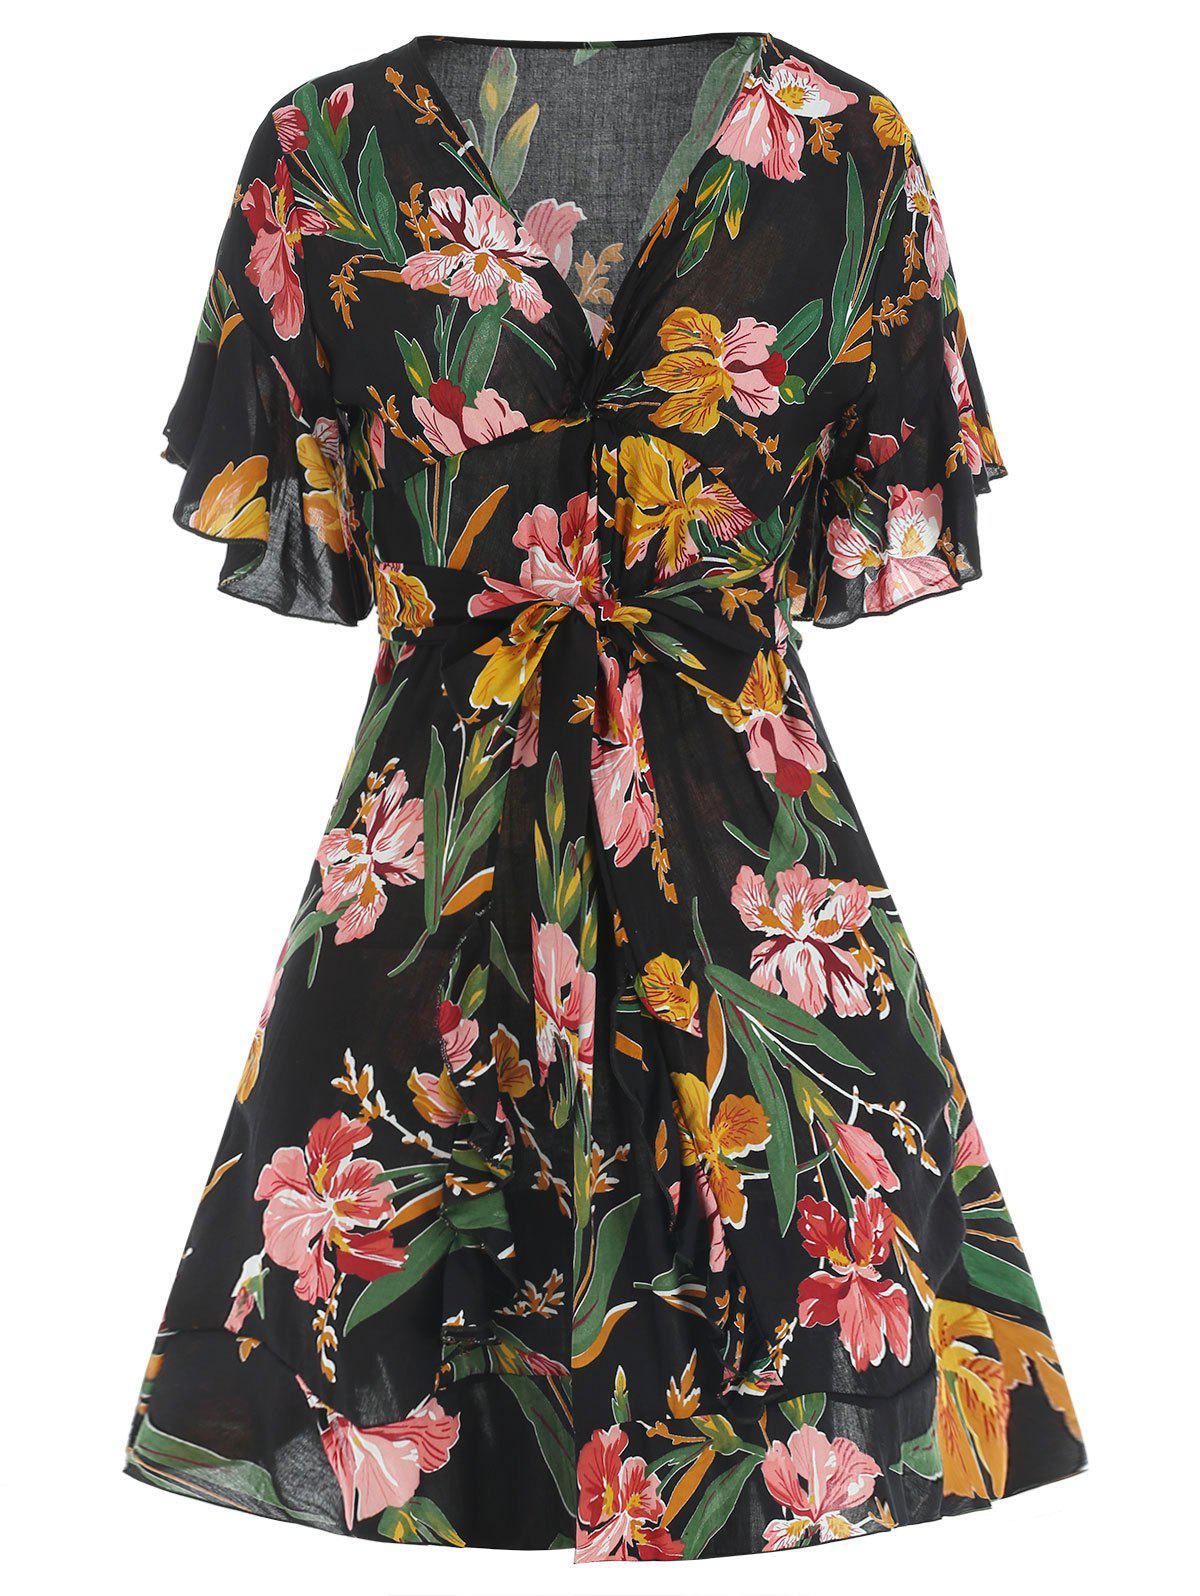 Store Tie Knot Floral Print Skater Dress